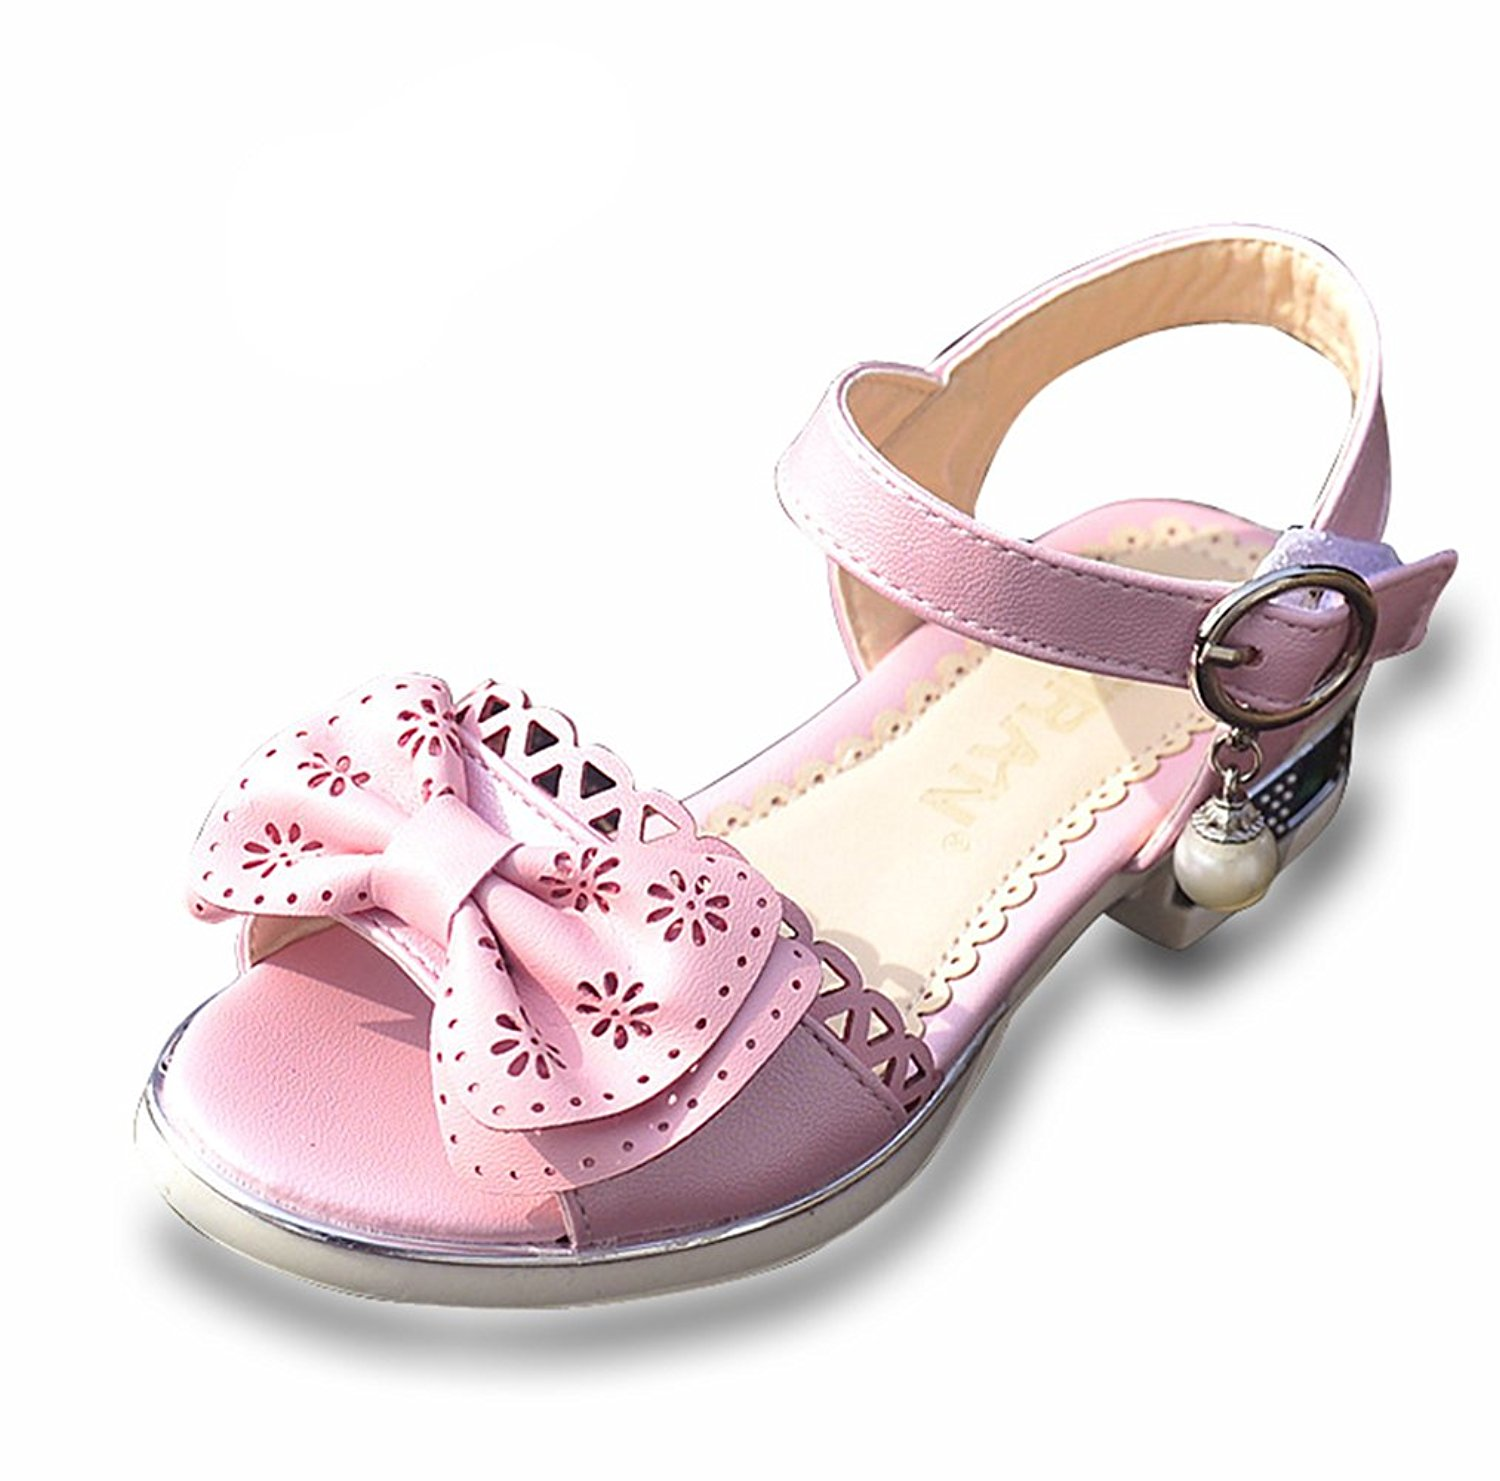 a7d4faf68439 Get Quotations · D.S.MOR Toddler Girls  Hollow Leather Sweet Comfortable  Sandals Dress Sandals Sandals Dress Sandals (